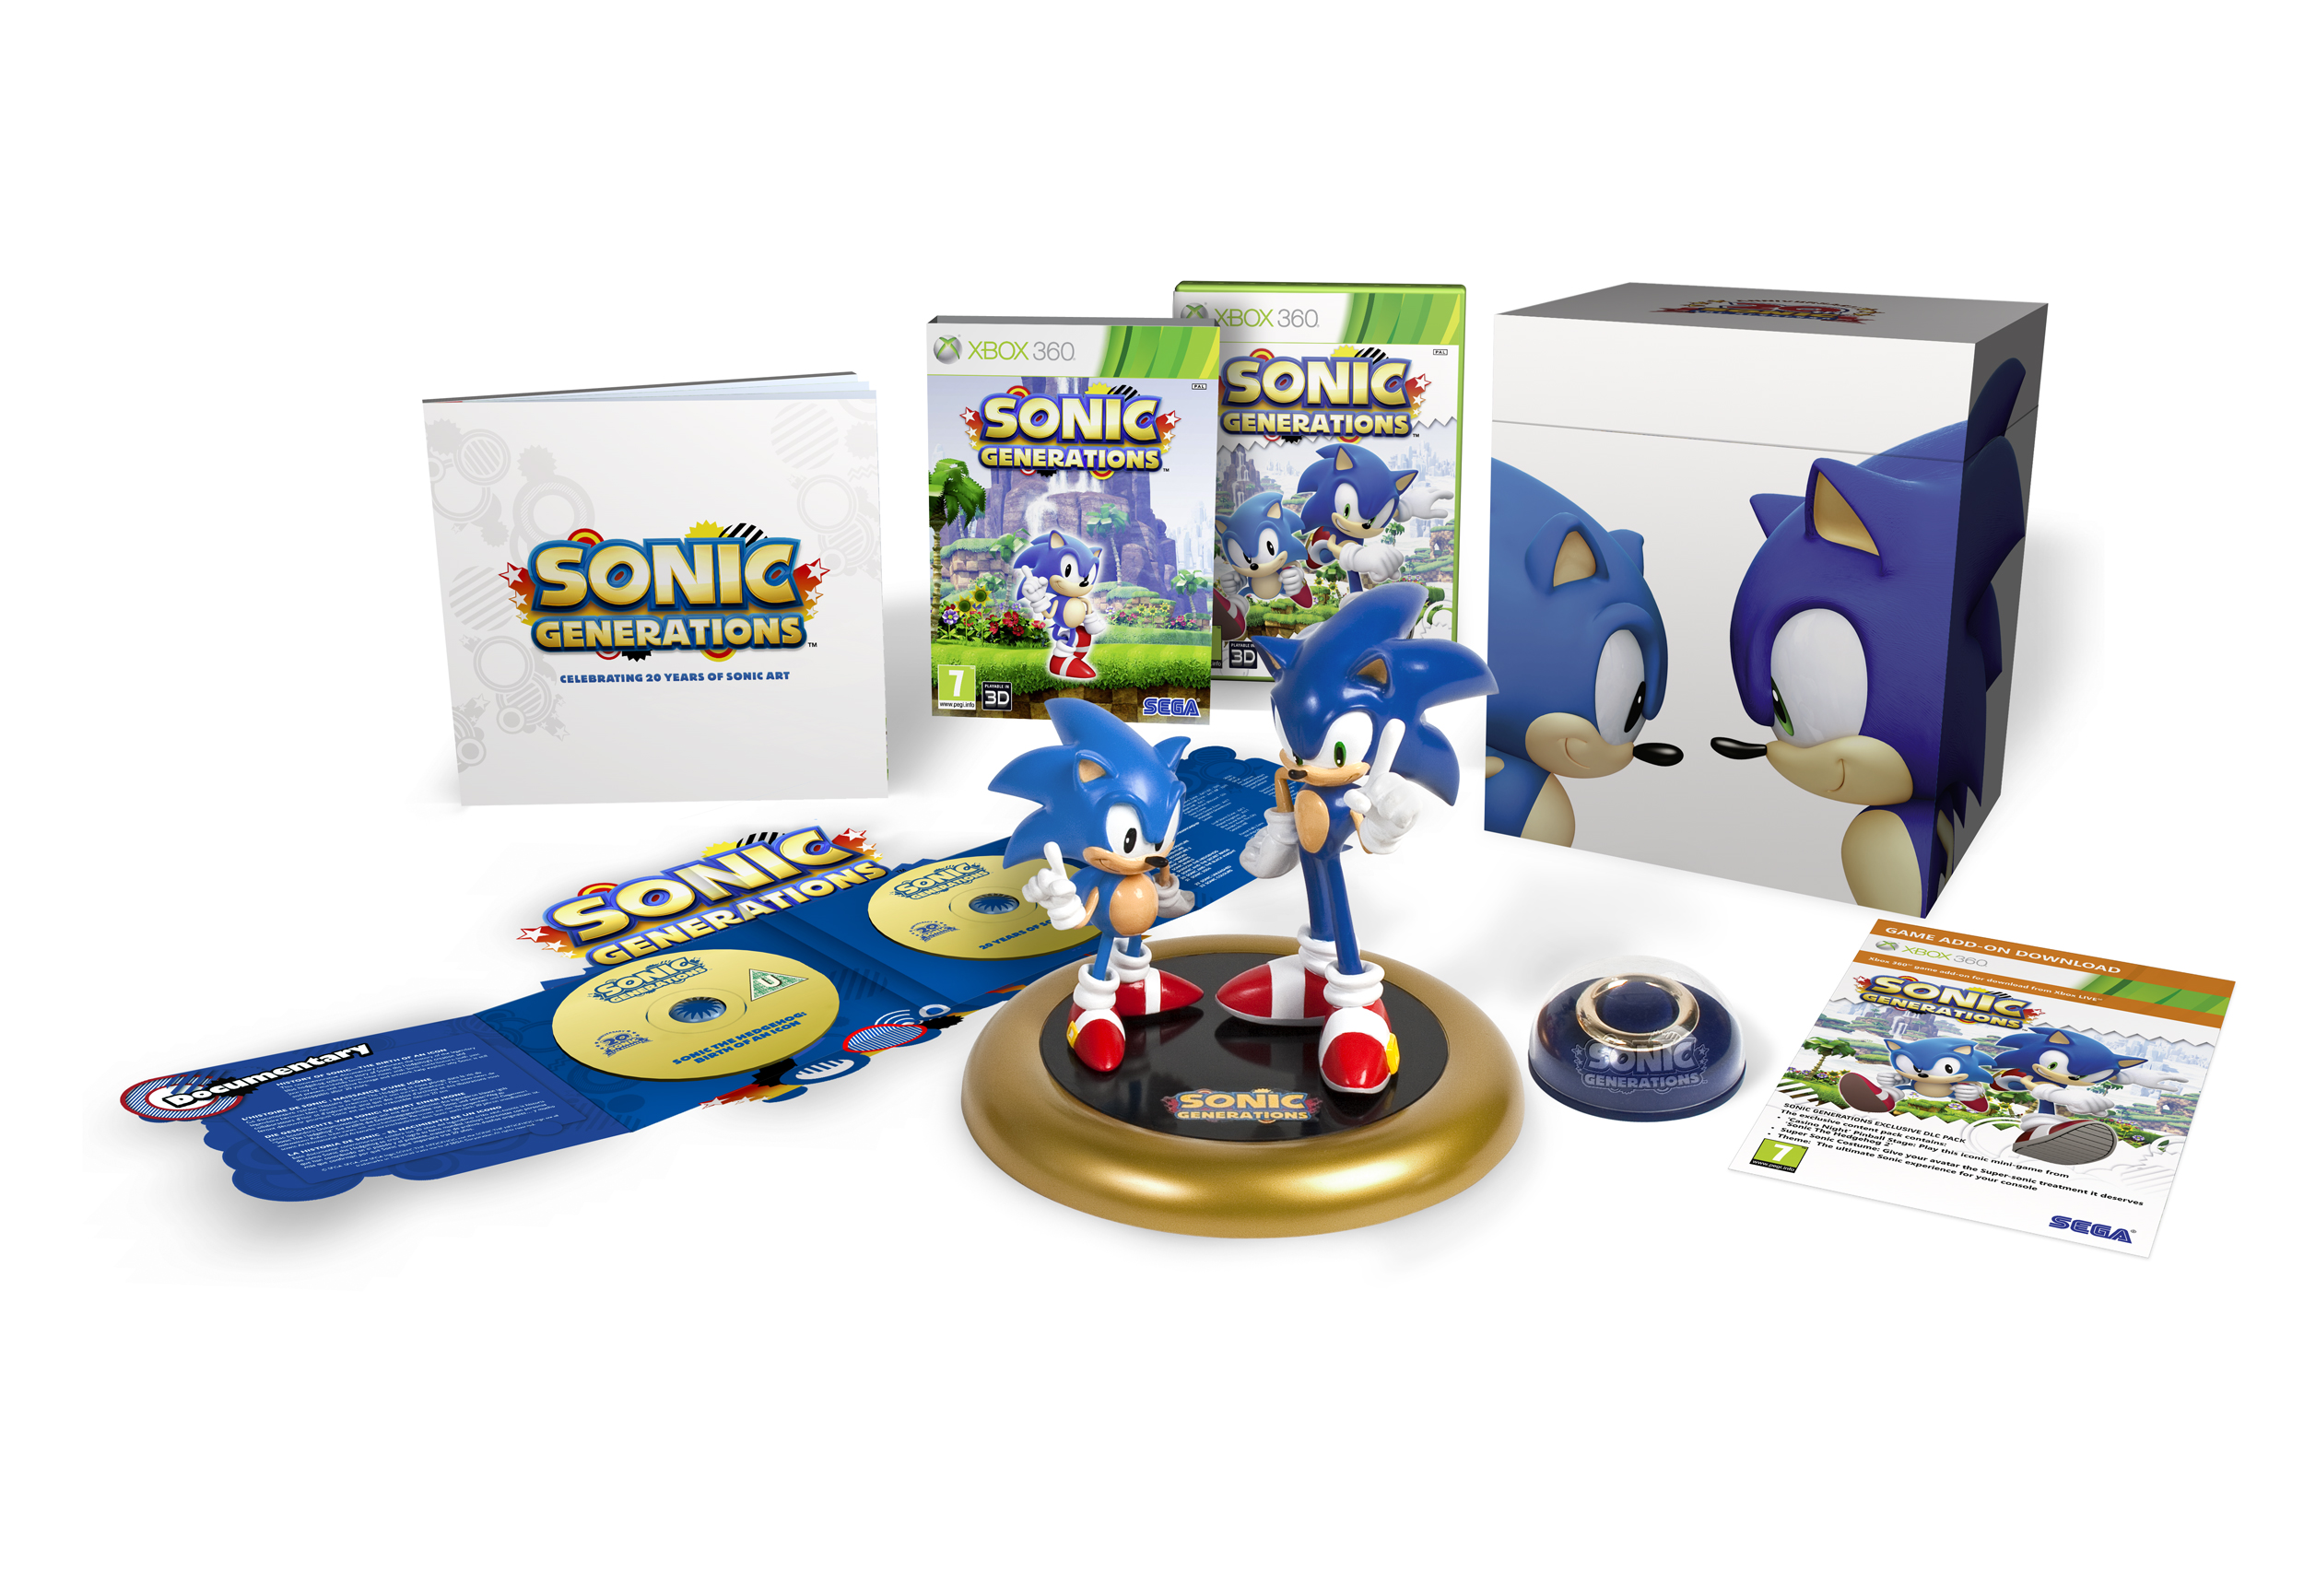 Sonic Generations Xbox 360 Collector's Edition